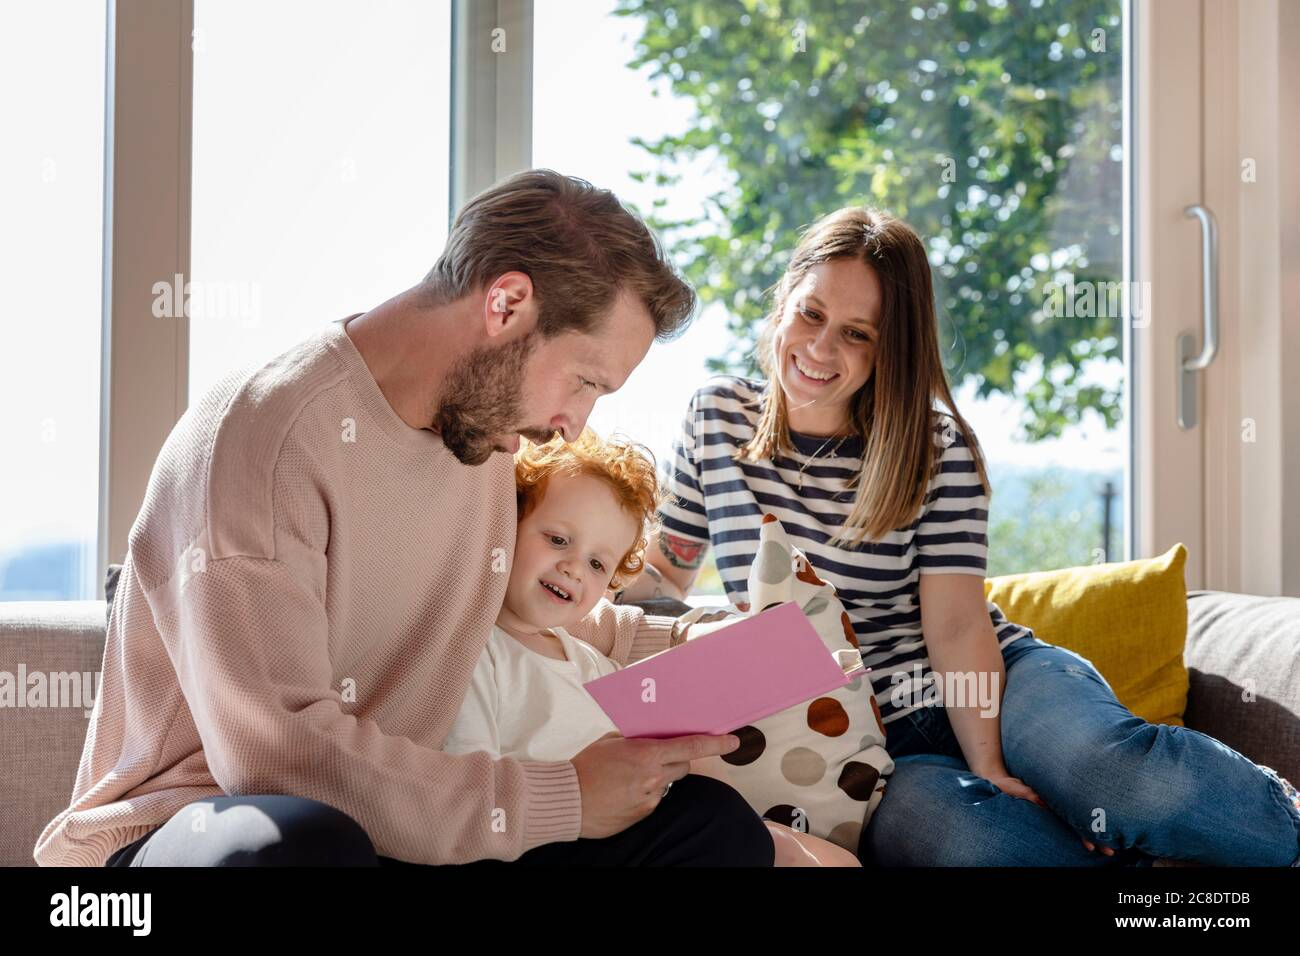 Smiling woman sitting and looking at man reading picture book to boy in living room Stock Photo